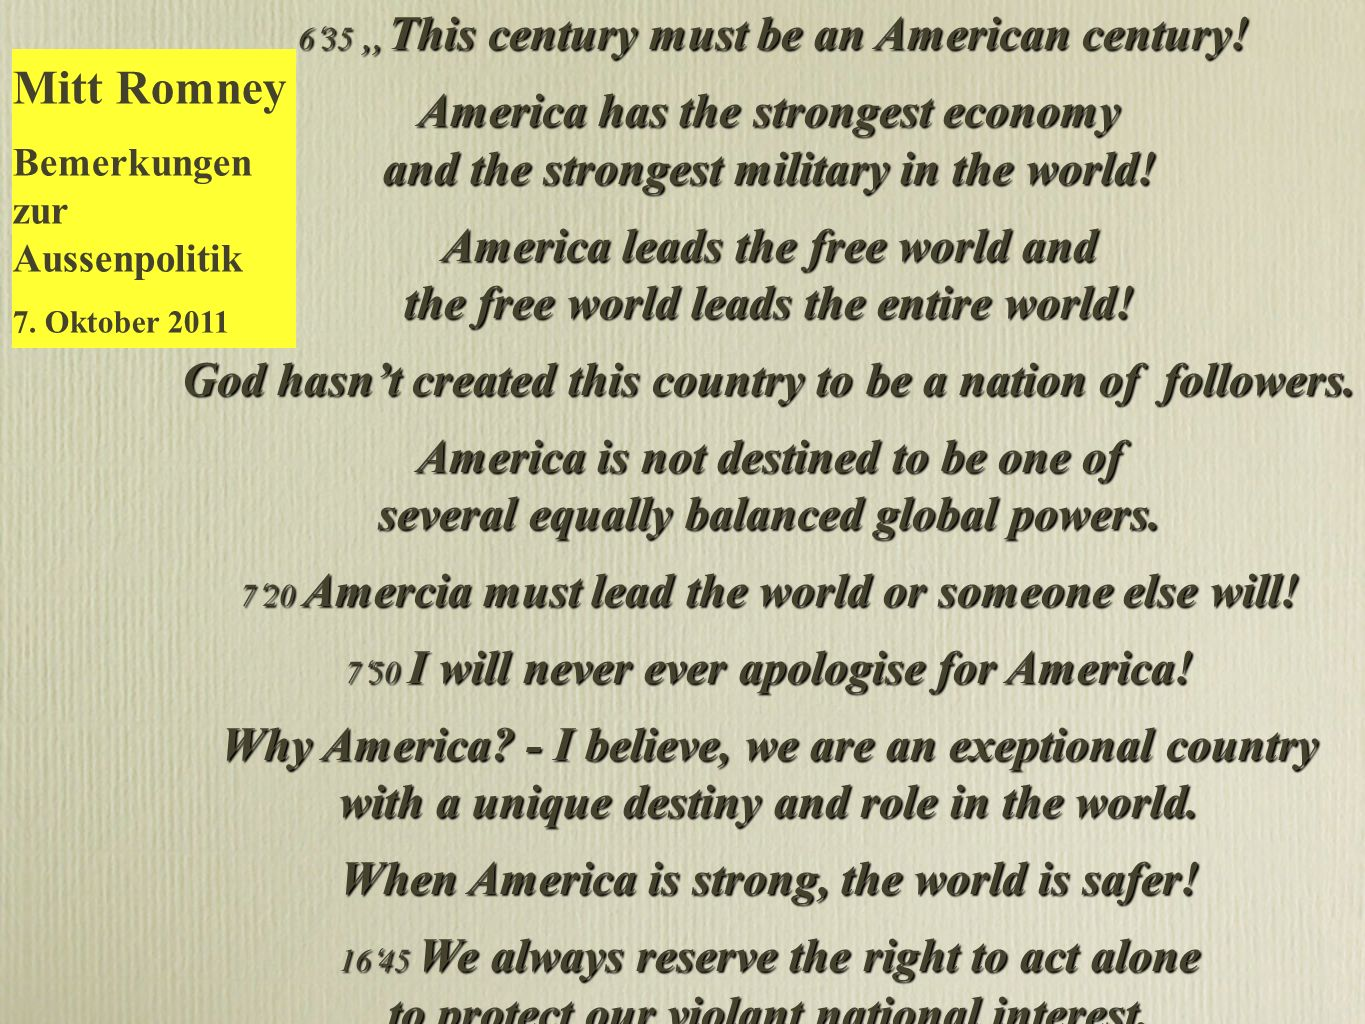 635 This century must be an American century.